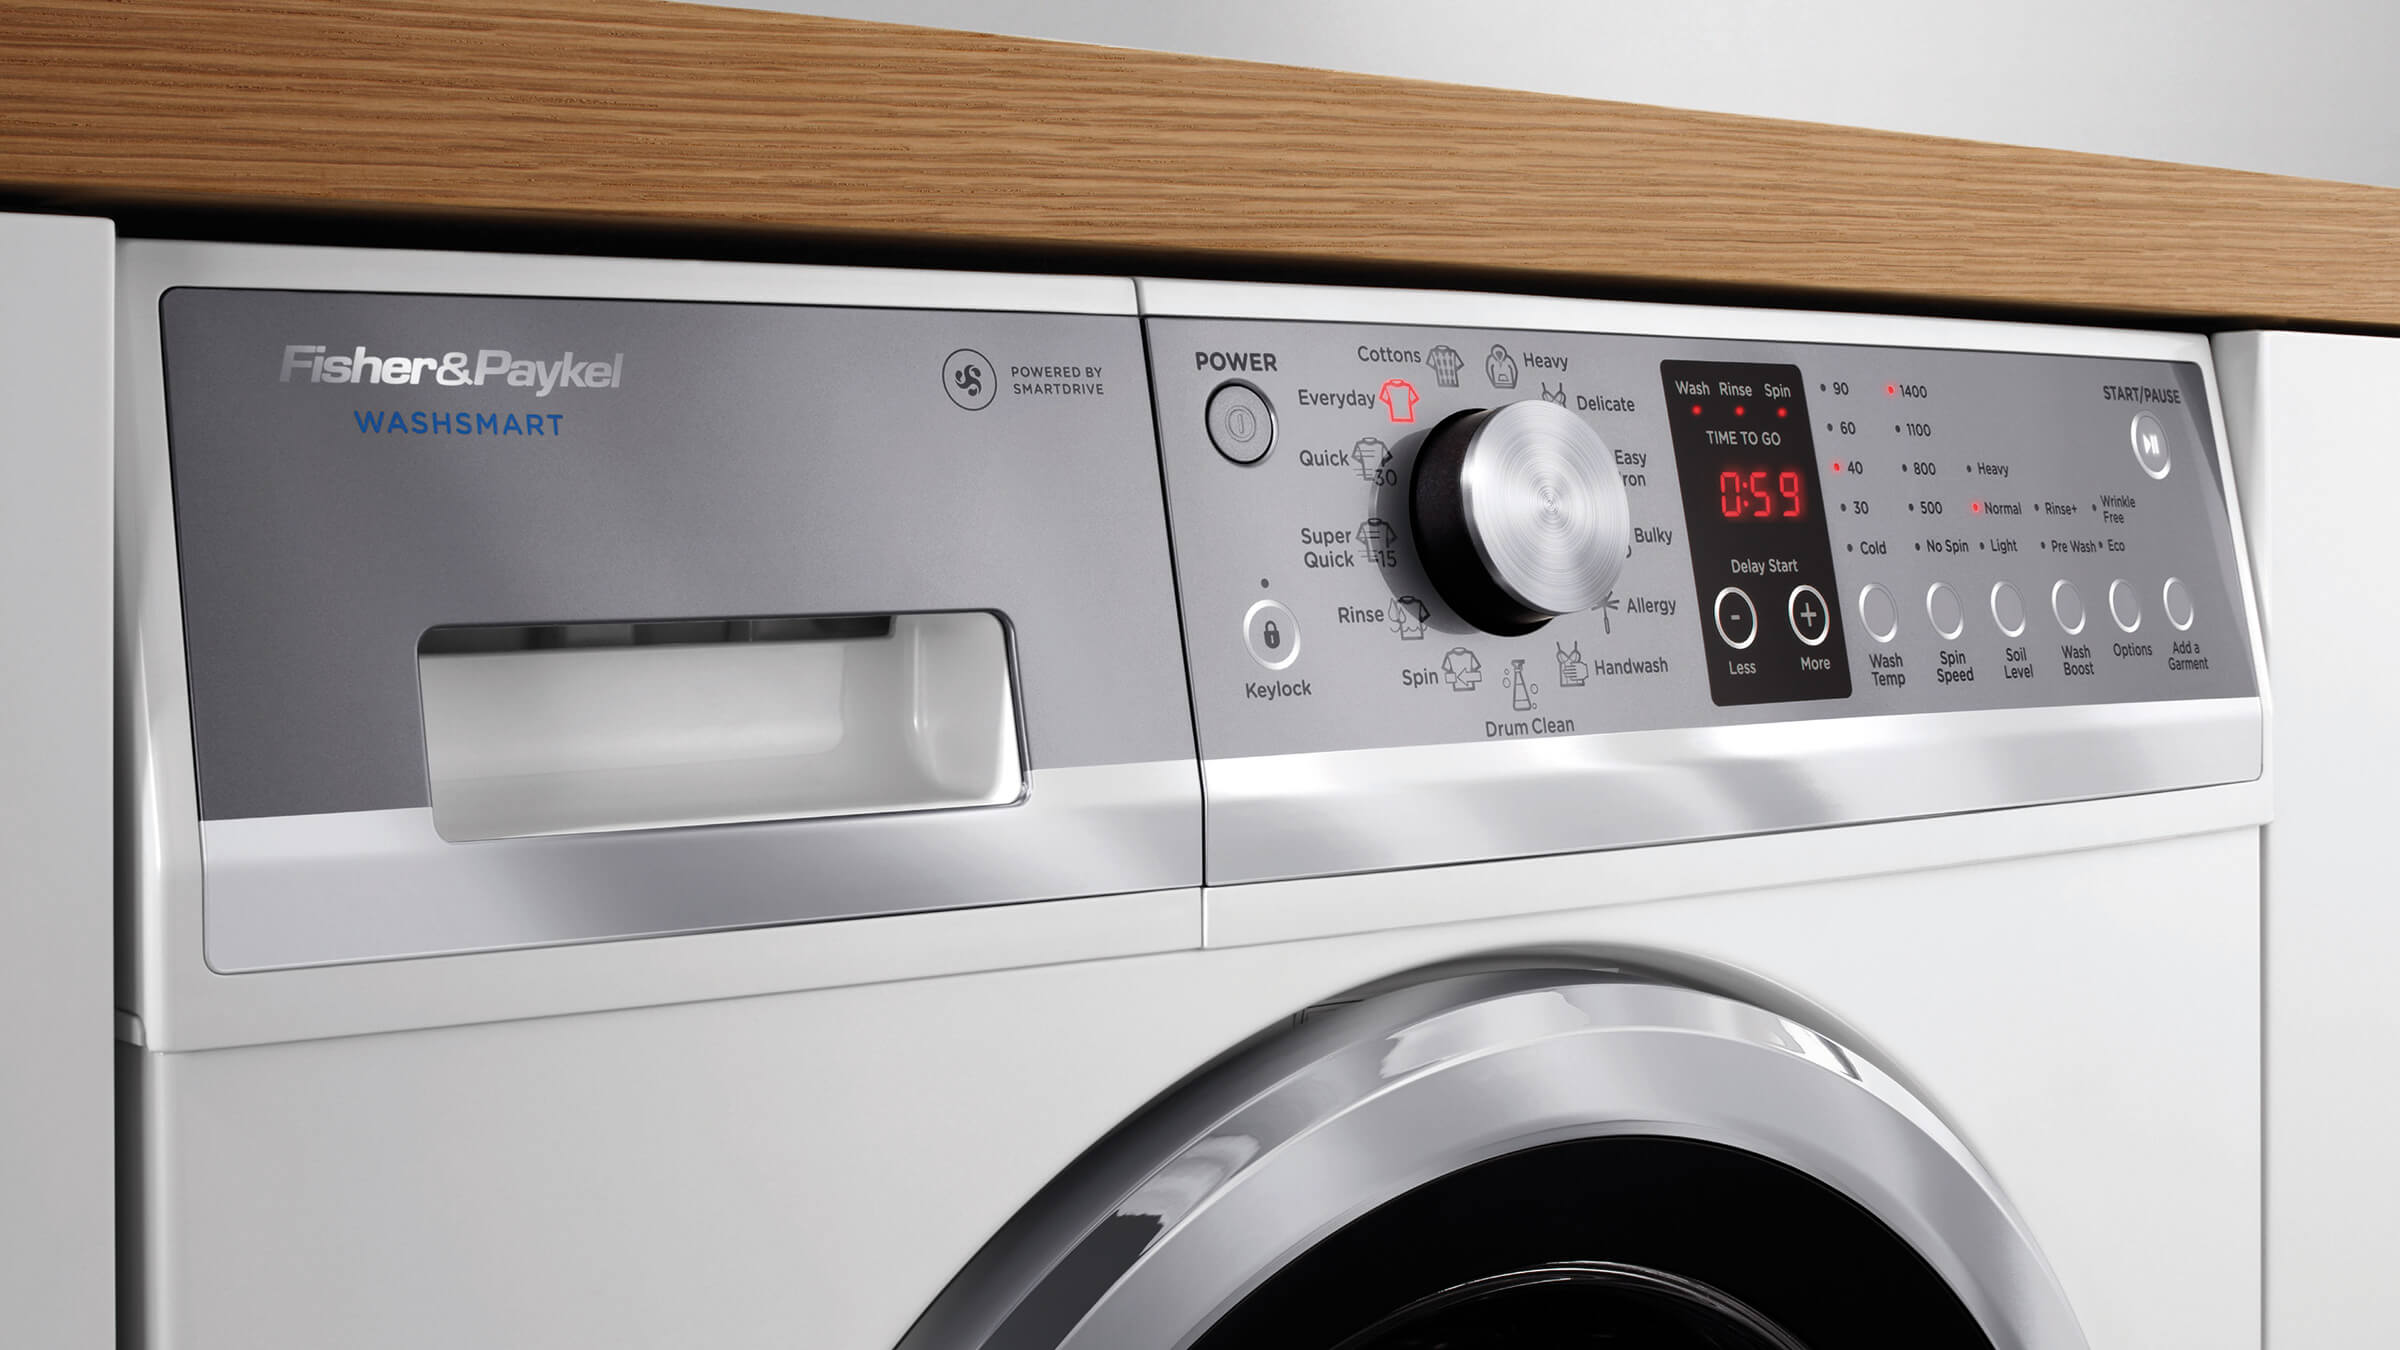 fisher and paykel manual washing machine